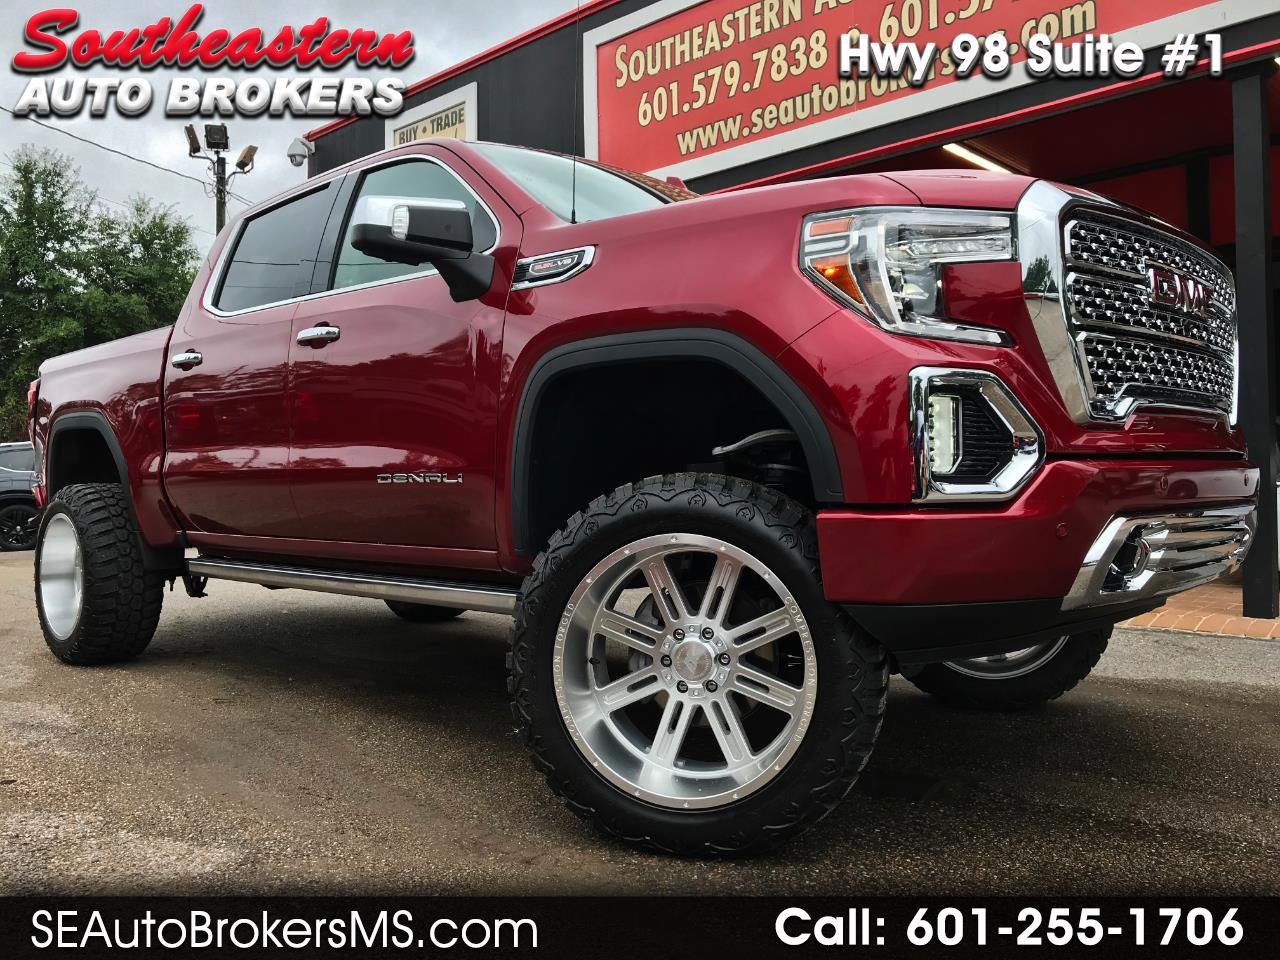 Used 2019 Gmc Sierra 1500 Denali Crew Cab Short Bed 4wd